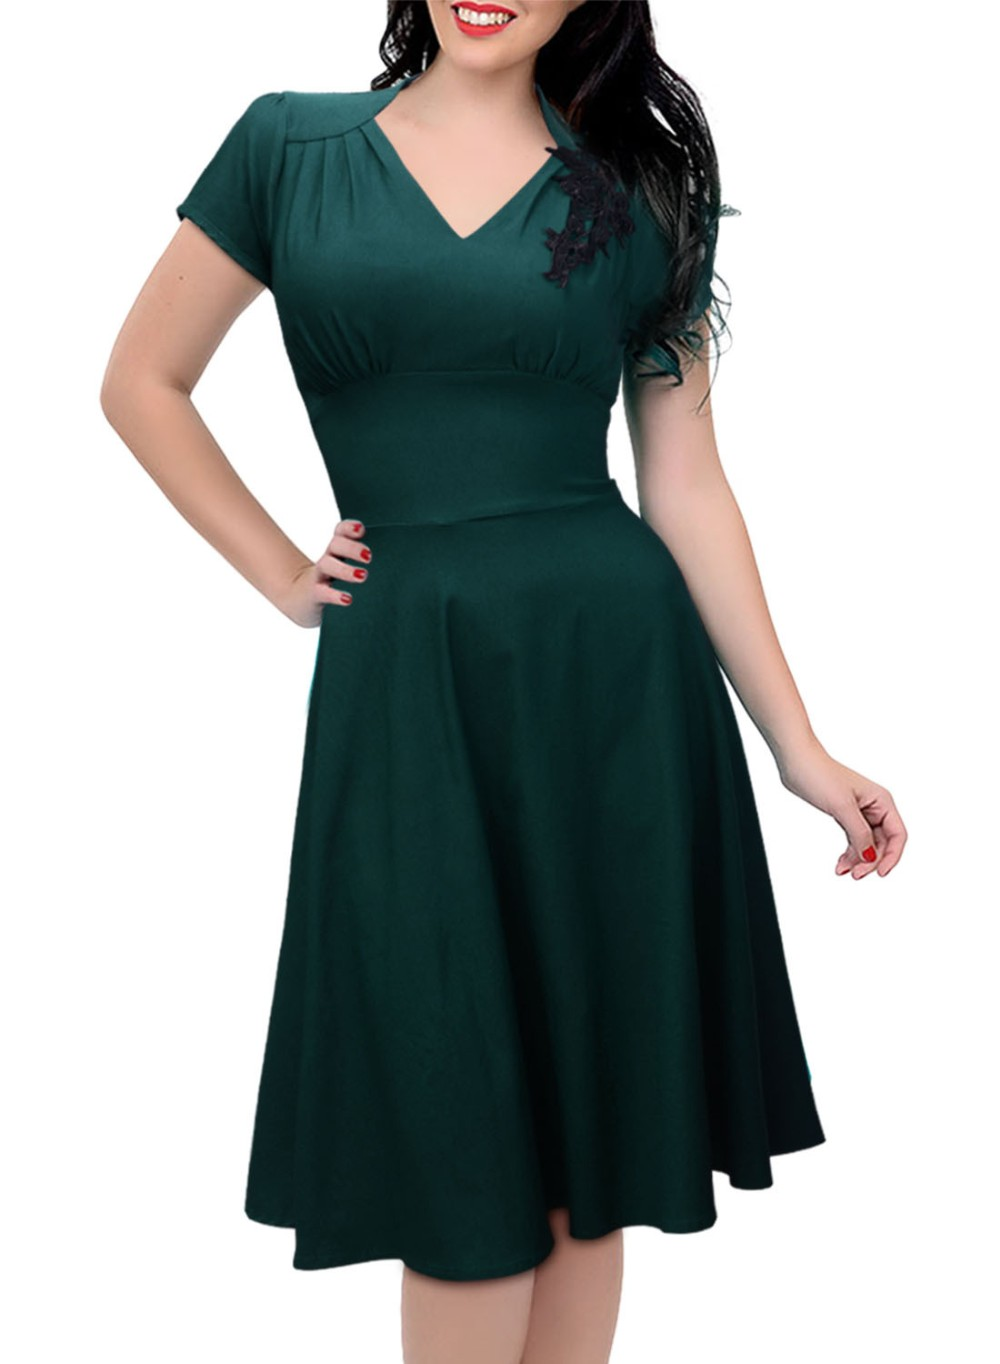 Short Dark Green Dress Promotion-Shop for Promotional Short Dark ...